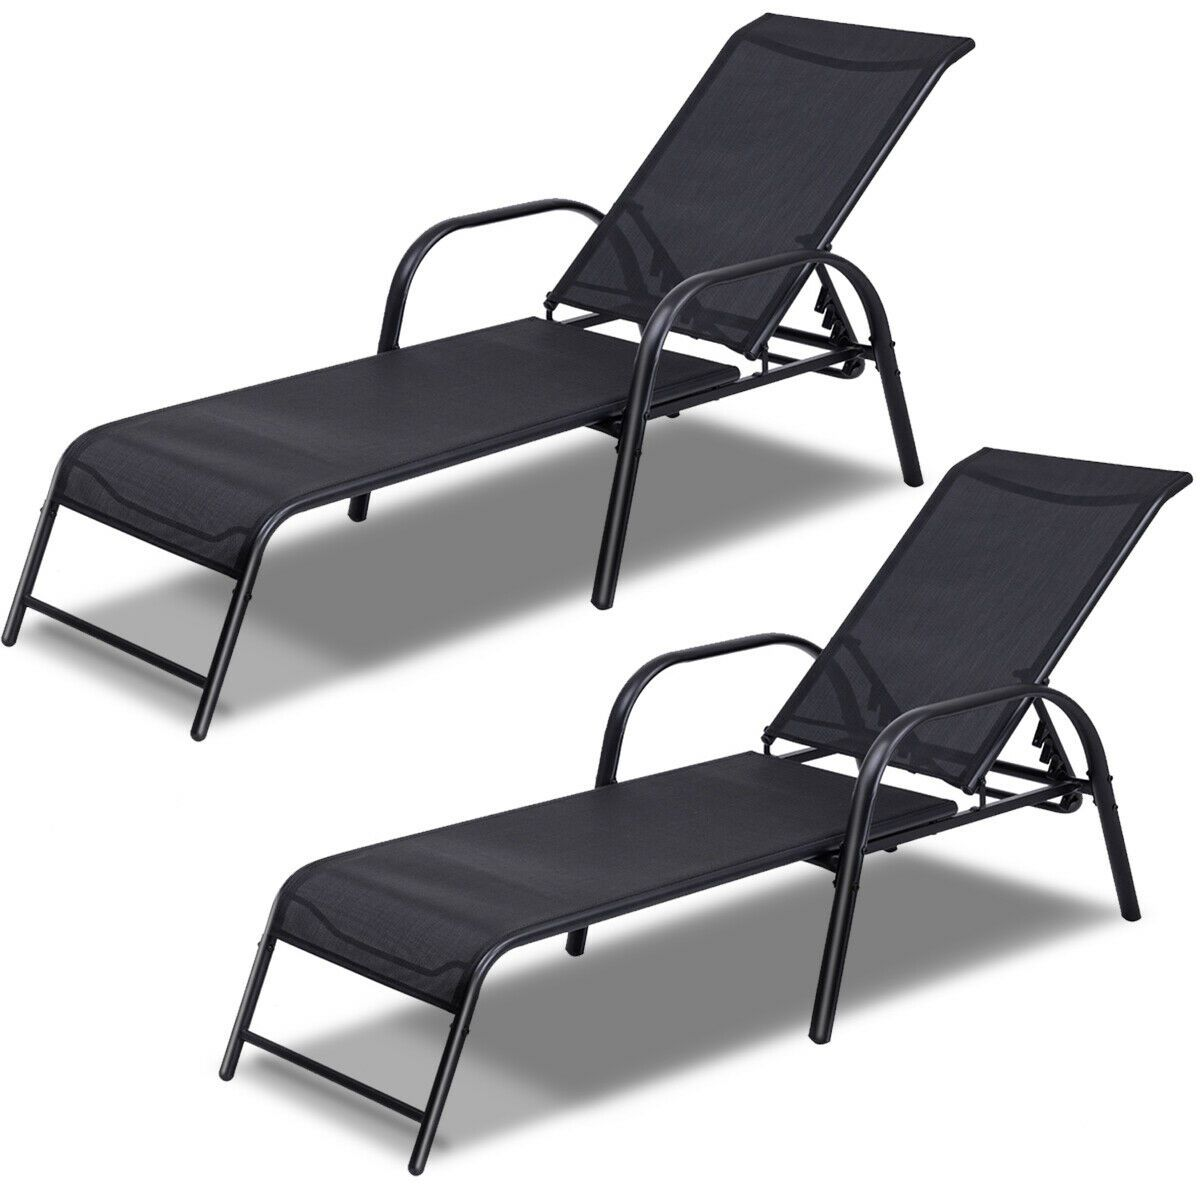 2pcs Lounge Chair Outdoor Pool Patio Chaise Chair Metal Frame Adjustable Back Ebay In 2020 Outdoor Chaise Lounge Chair Lounge Chair Outdoor Patio Lounge Chairs